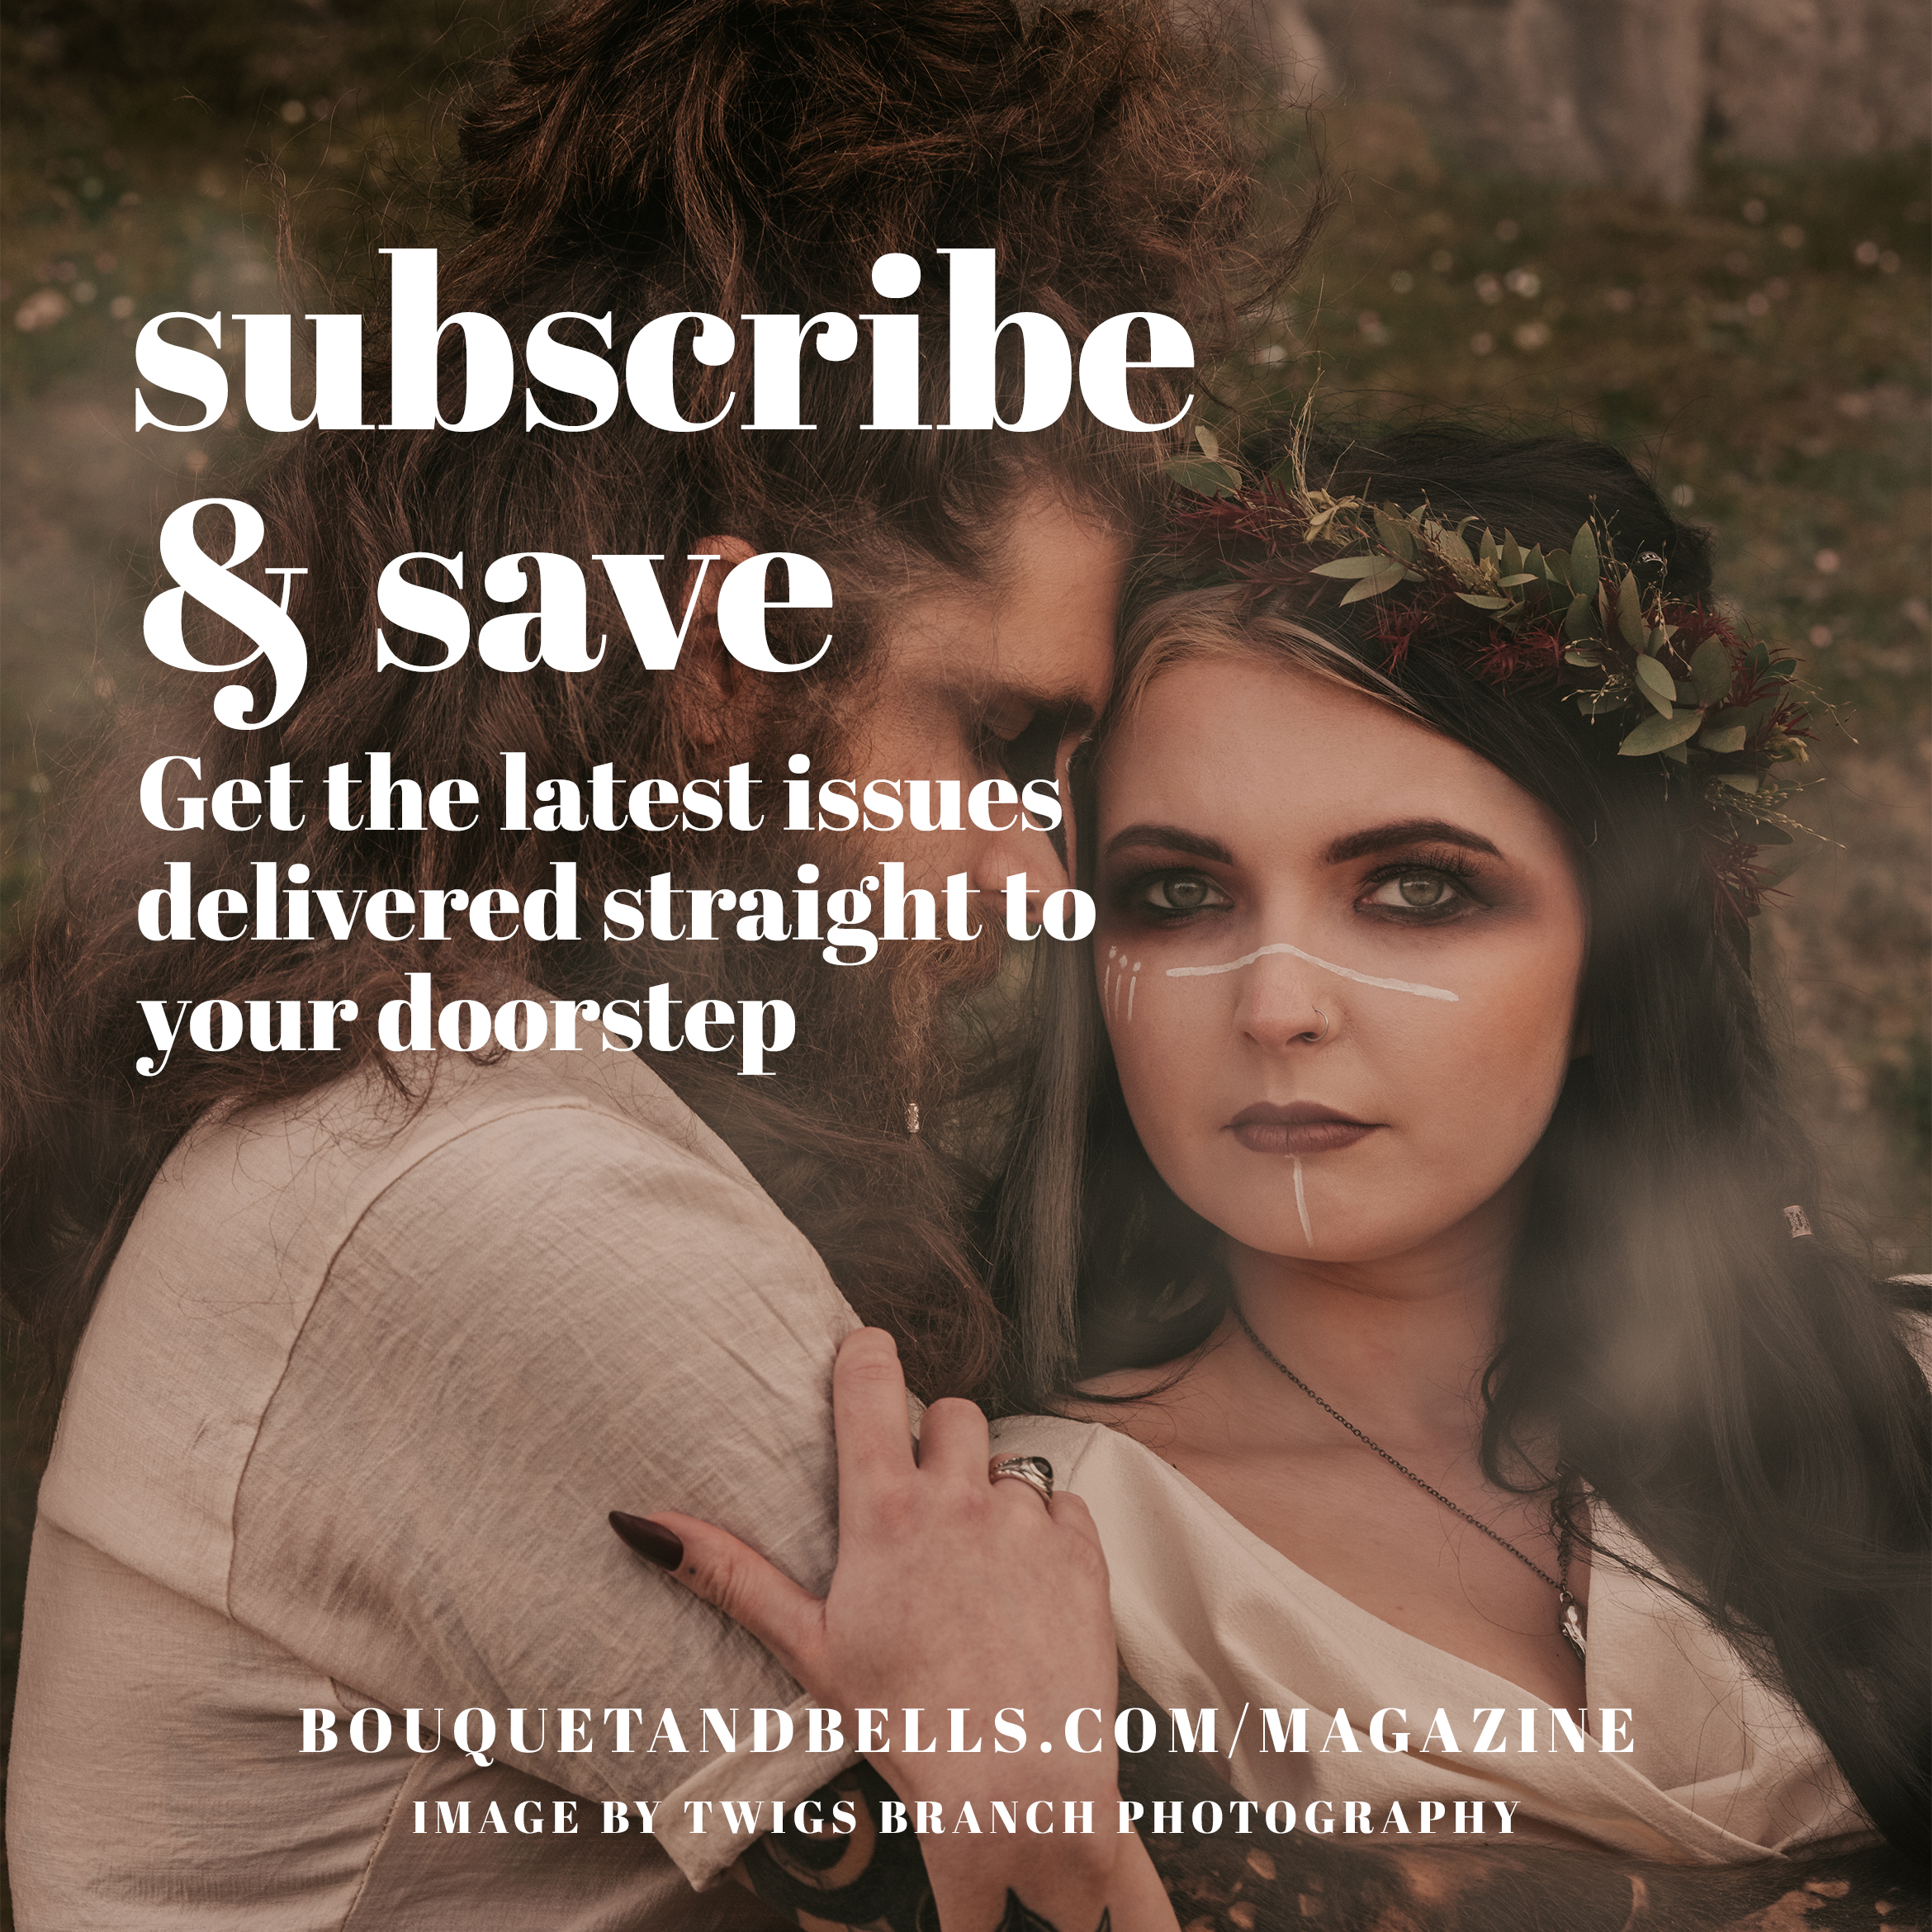 bouquet-and-bells-wedding-magazine-issue-04-autumn-winter-subscribe-subscription-2021